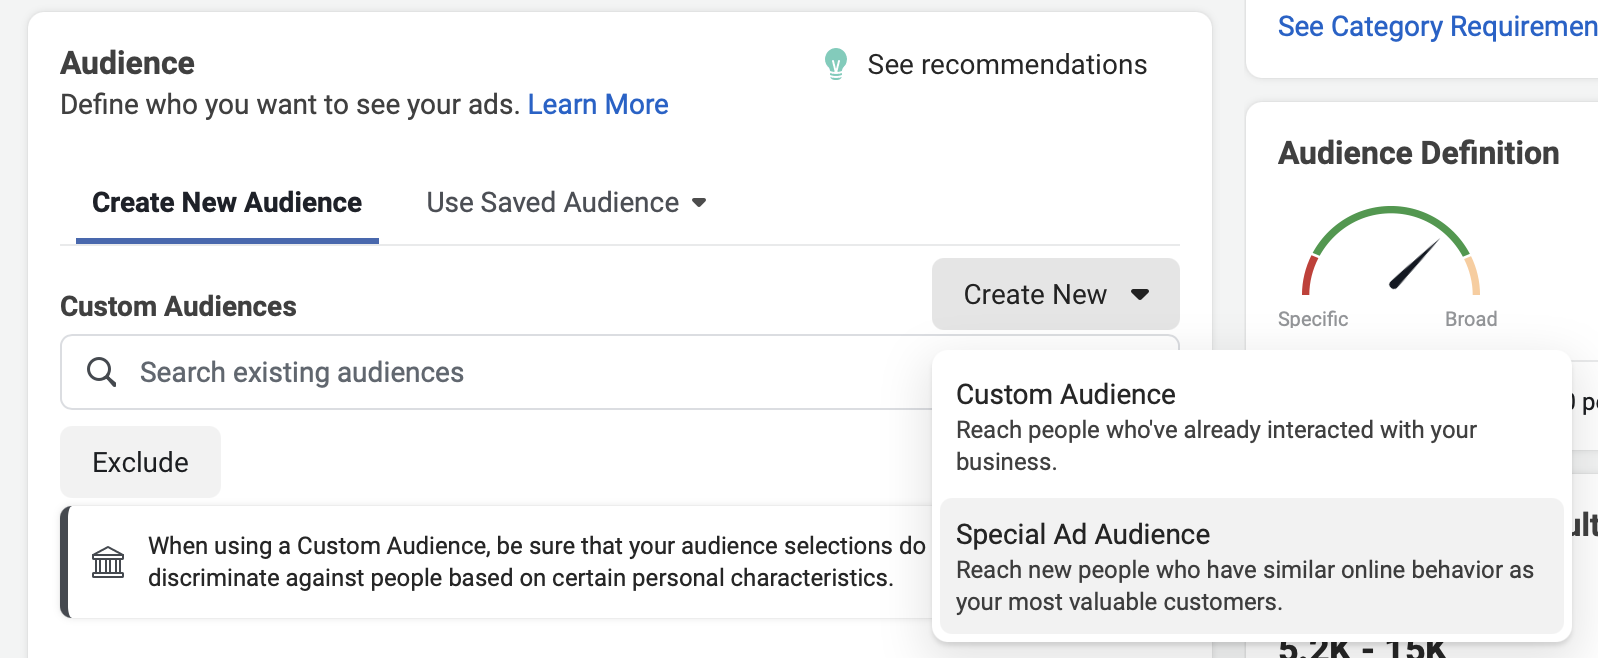 Special Ad Audiences